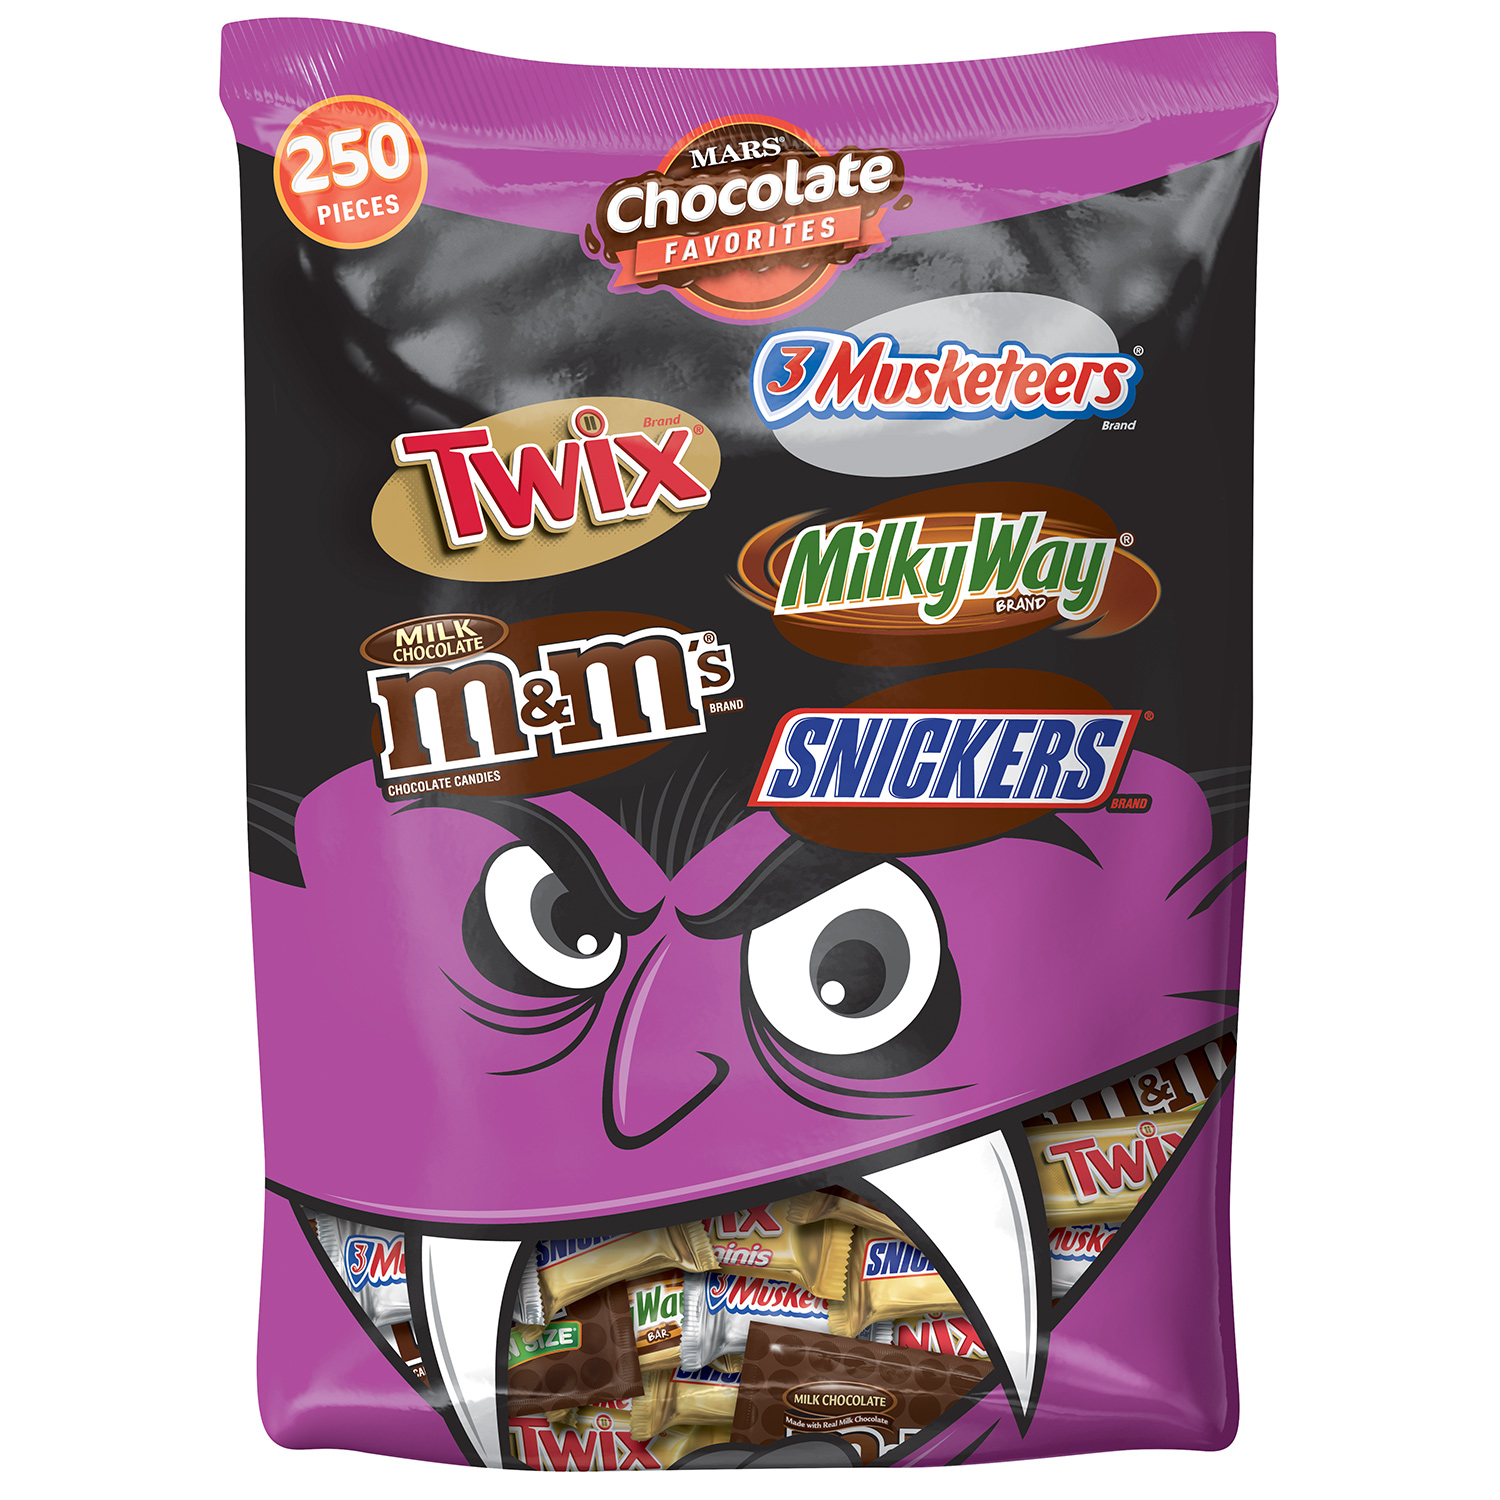 MARS Chocolate Favorites Halloween Candy Bars Variety Assorted Mix Bag (TWIX, MILKY WAY,... by MARS, INC.